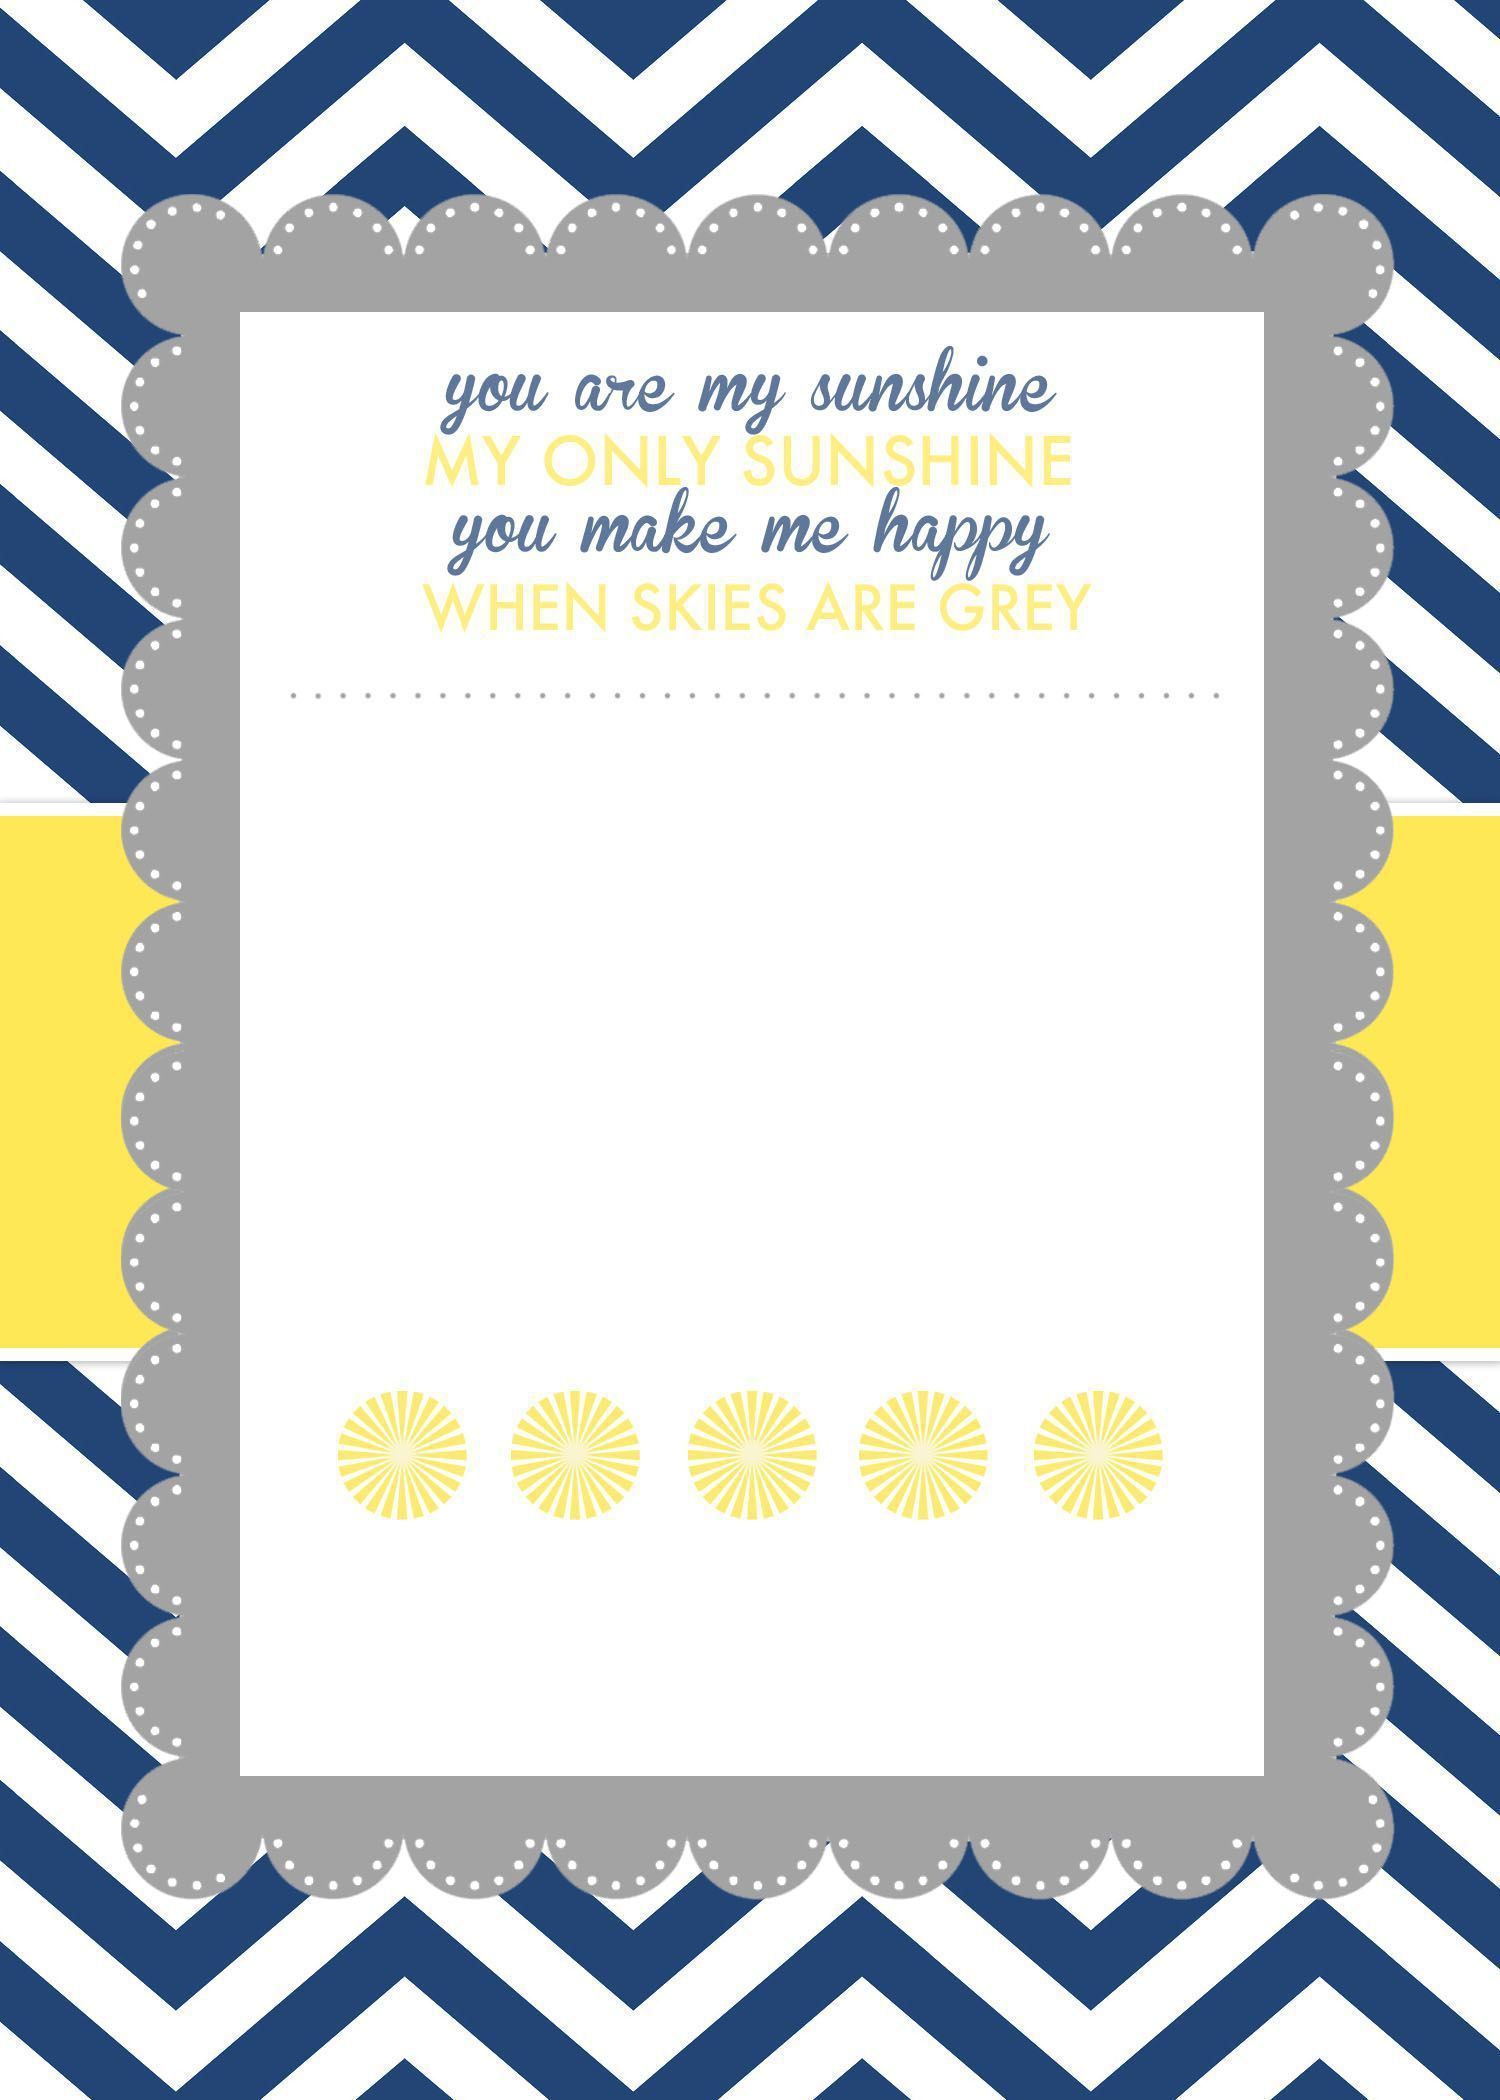 003 Shocking Baby Shower Template Word Concept  Printable Search Free InvitationFull